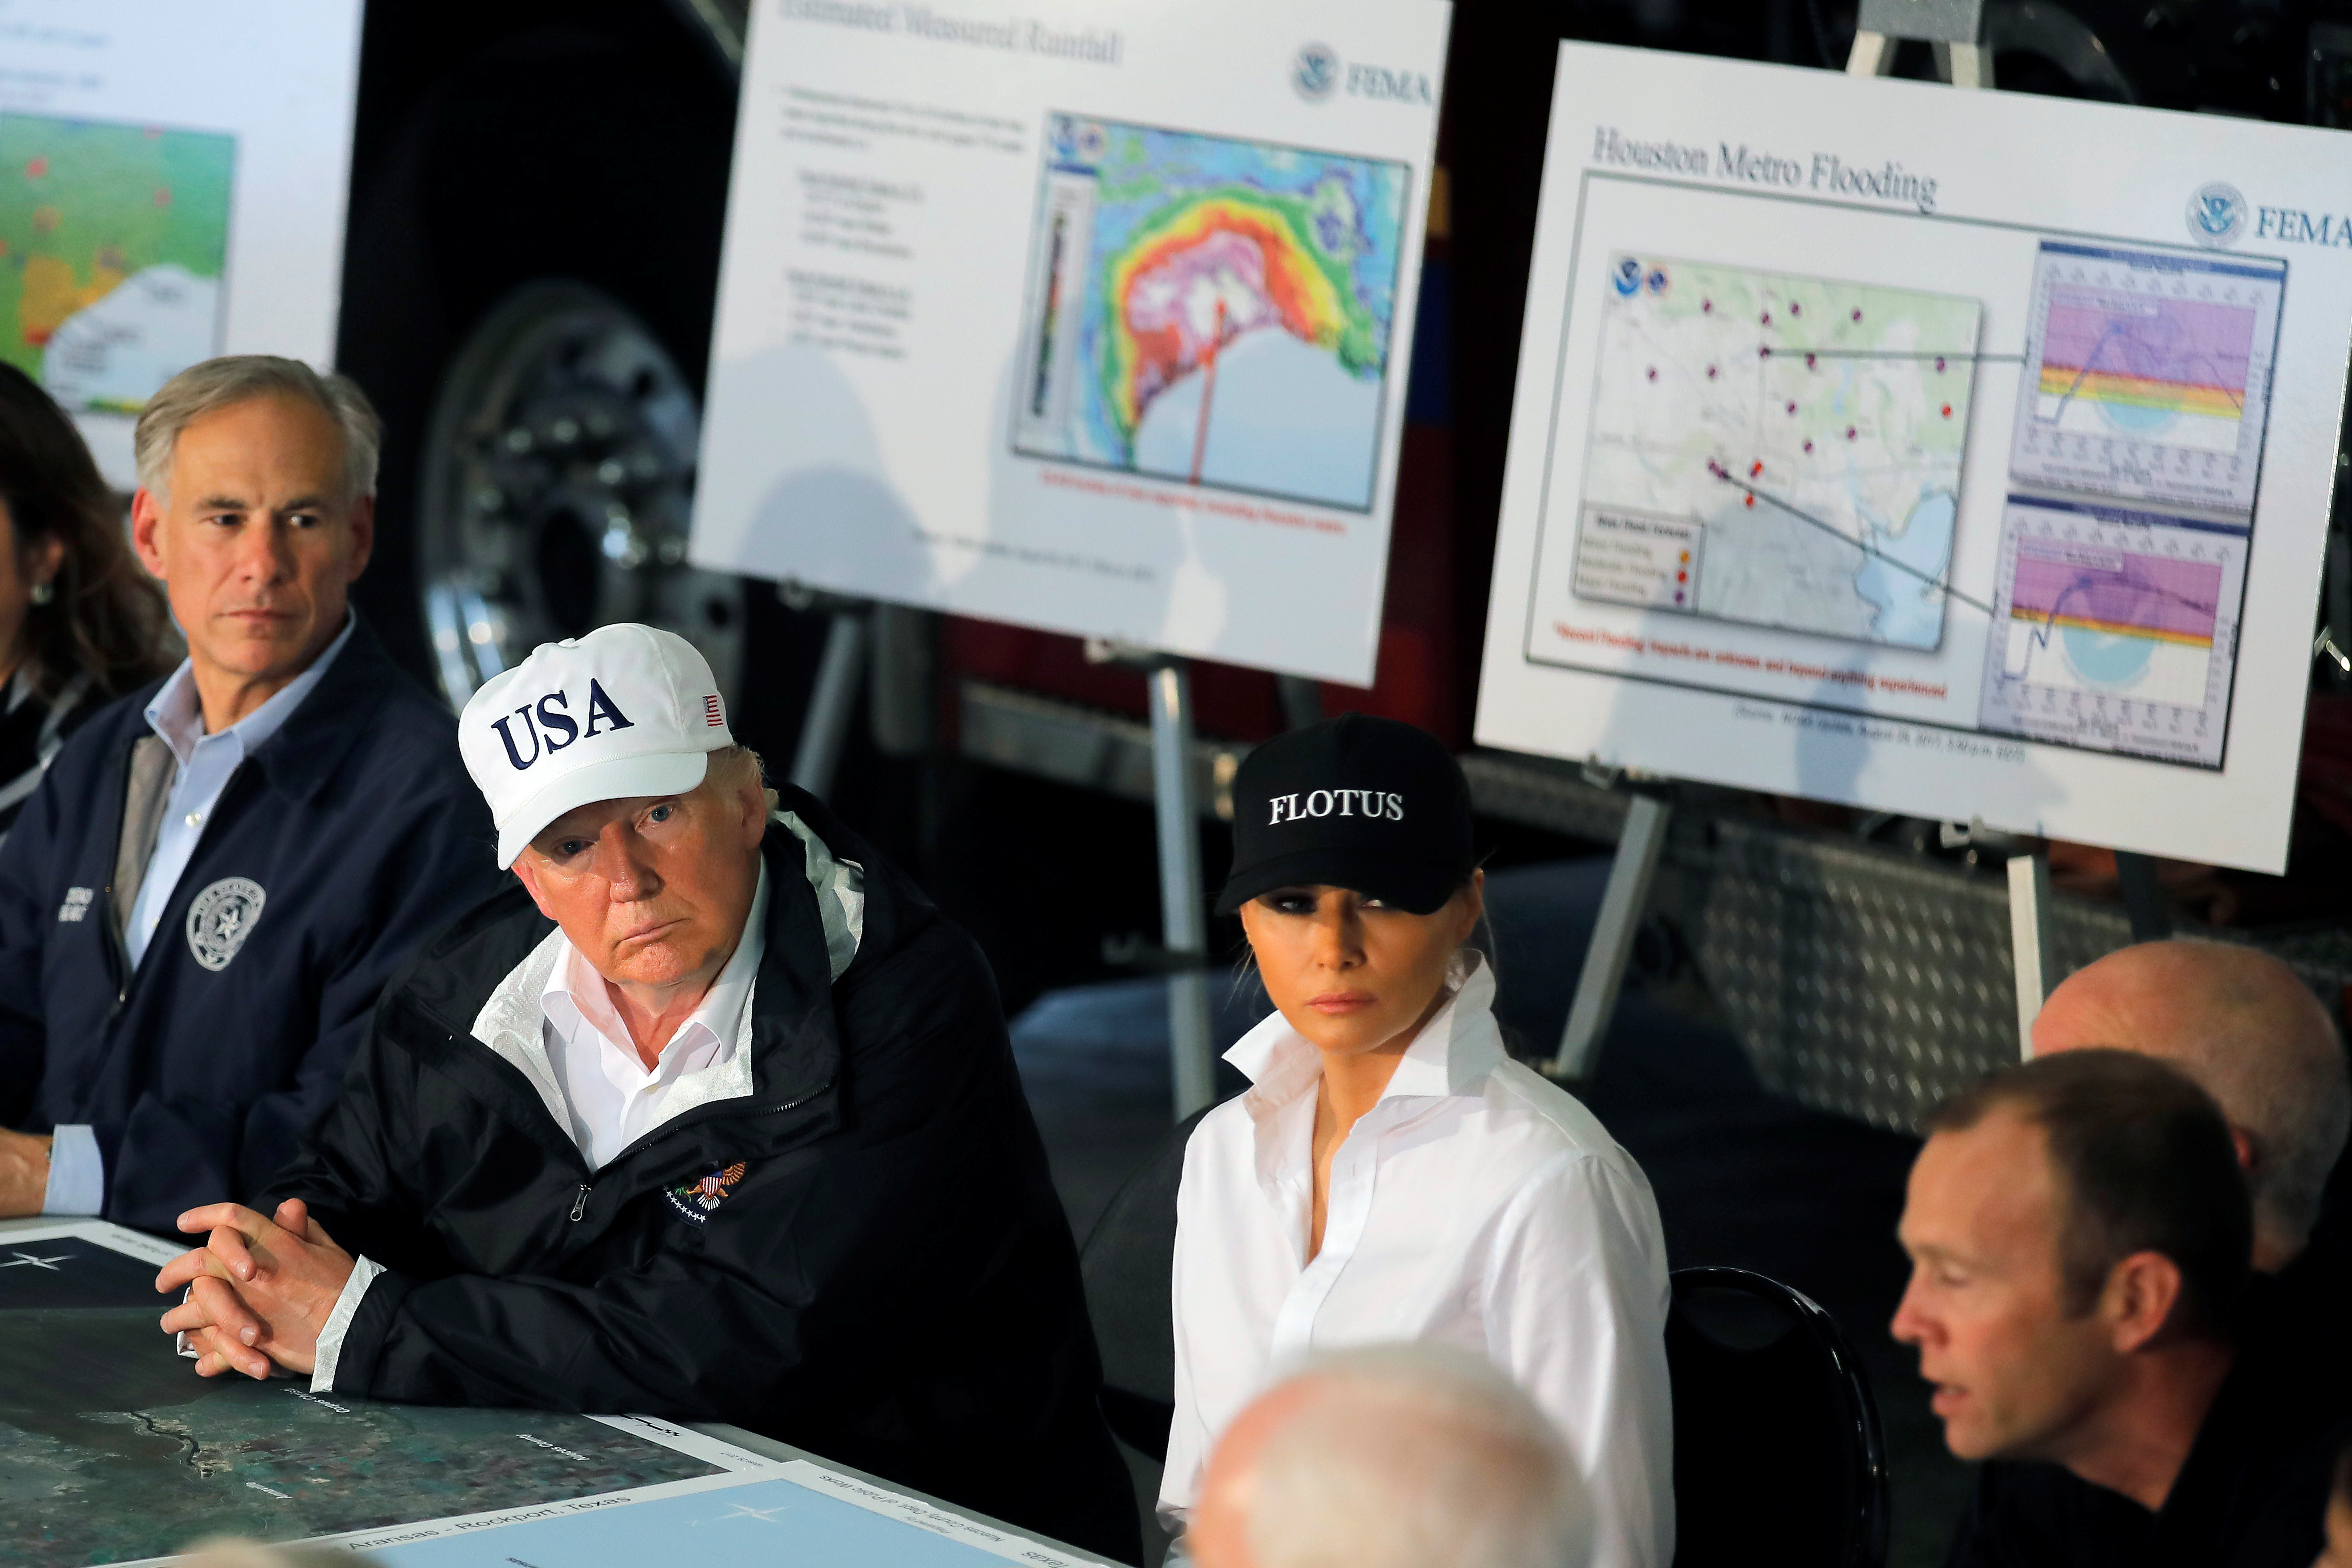 President Donald Trump and first lady Melania Trump receive a briefing on Tropical Storm Harvey relief efforts in Corpus Christi, Texas. REUTERS/Carlos Barria